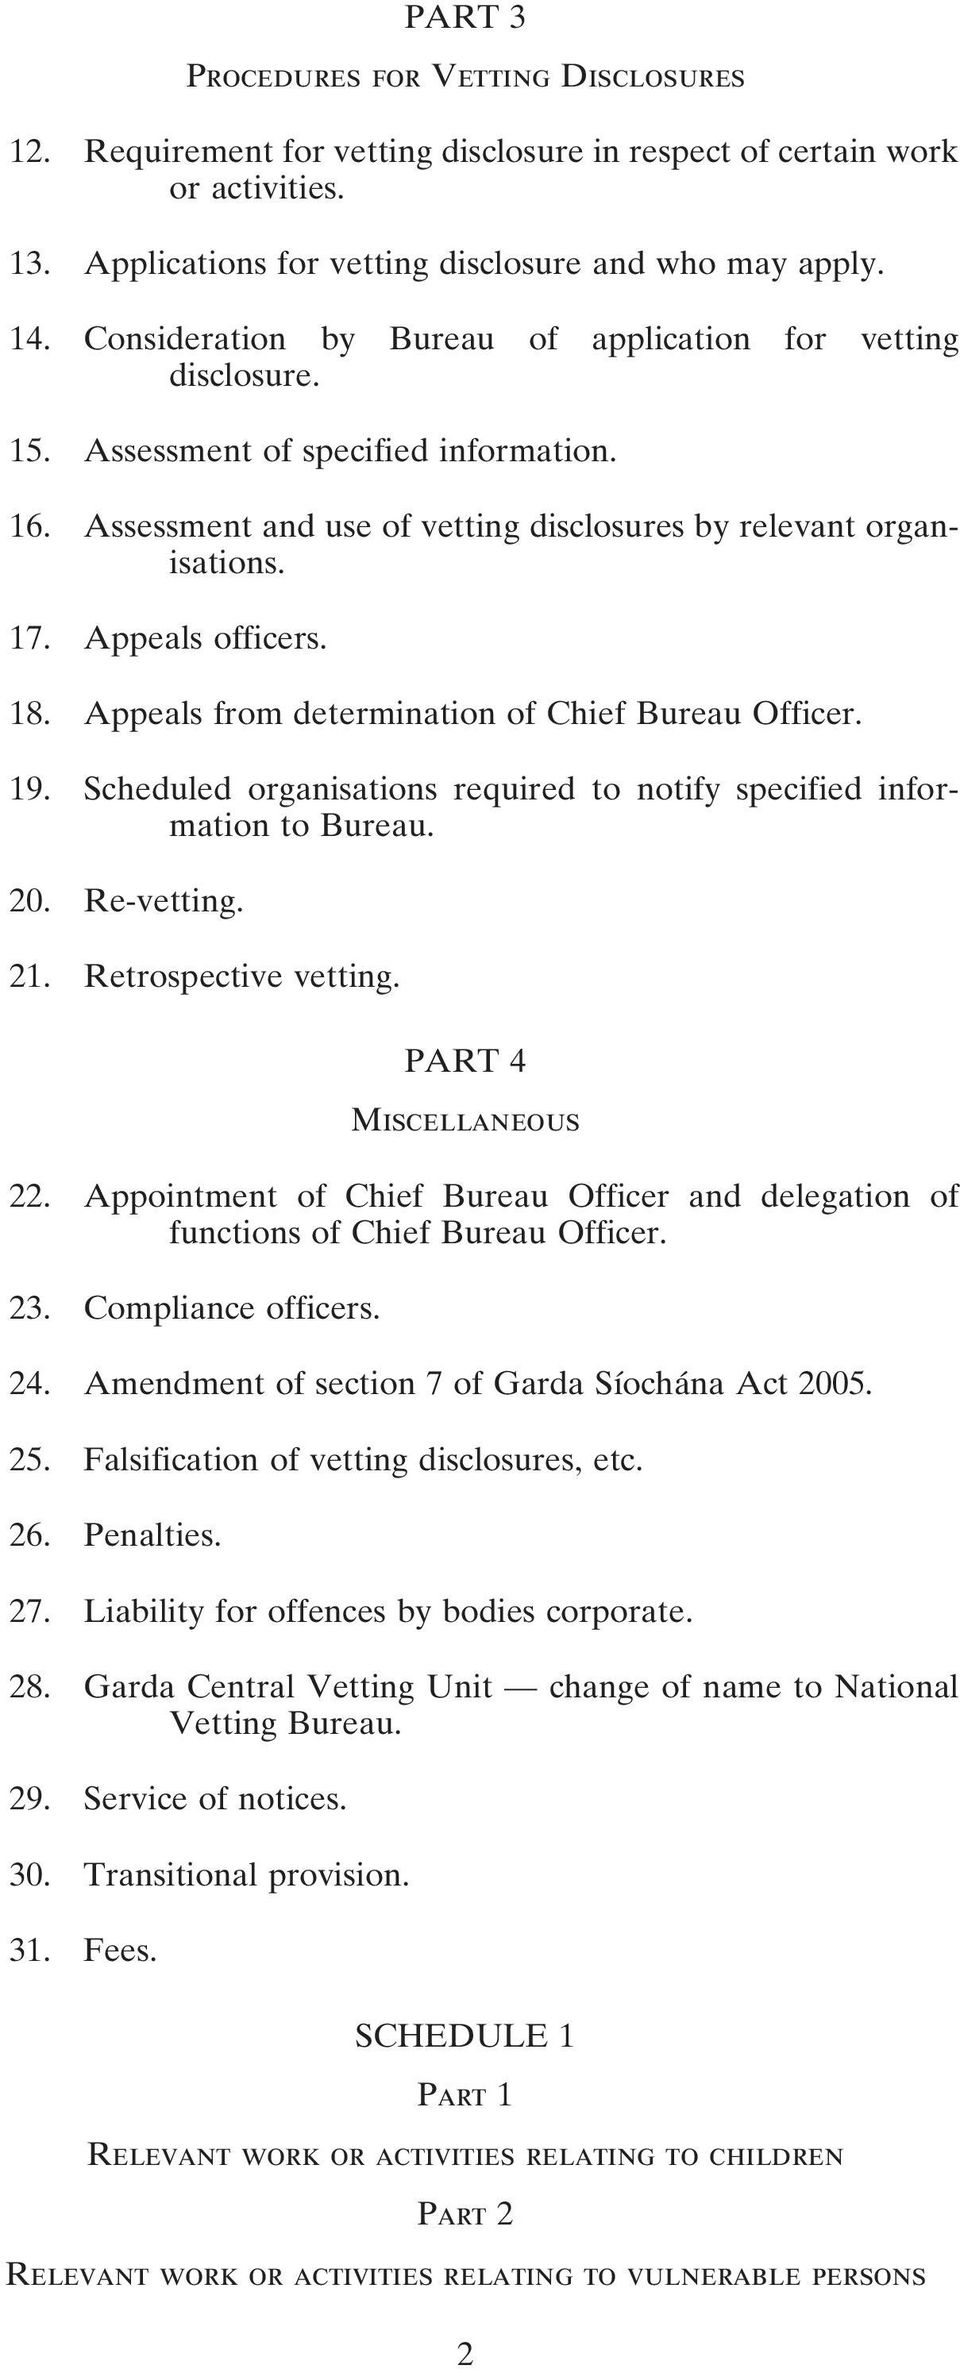 18. Appeals from determination of Chief Bureau Officer. 19. Scheduled organisations required to notify specified information to Bureau. 20. Re-vetting. 21. Retrospective vetting.